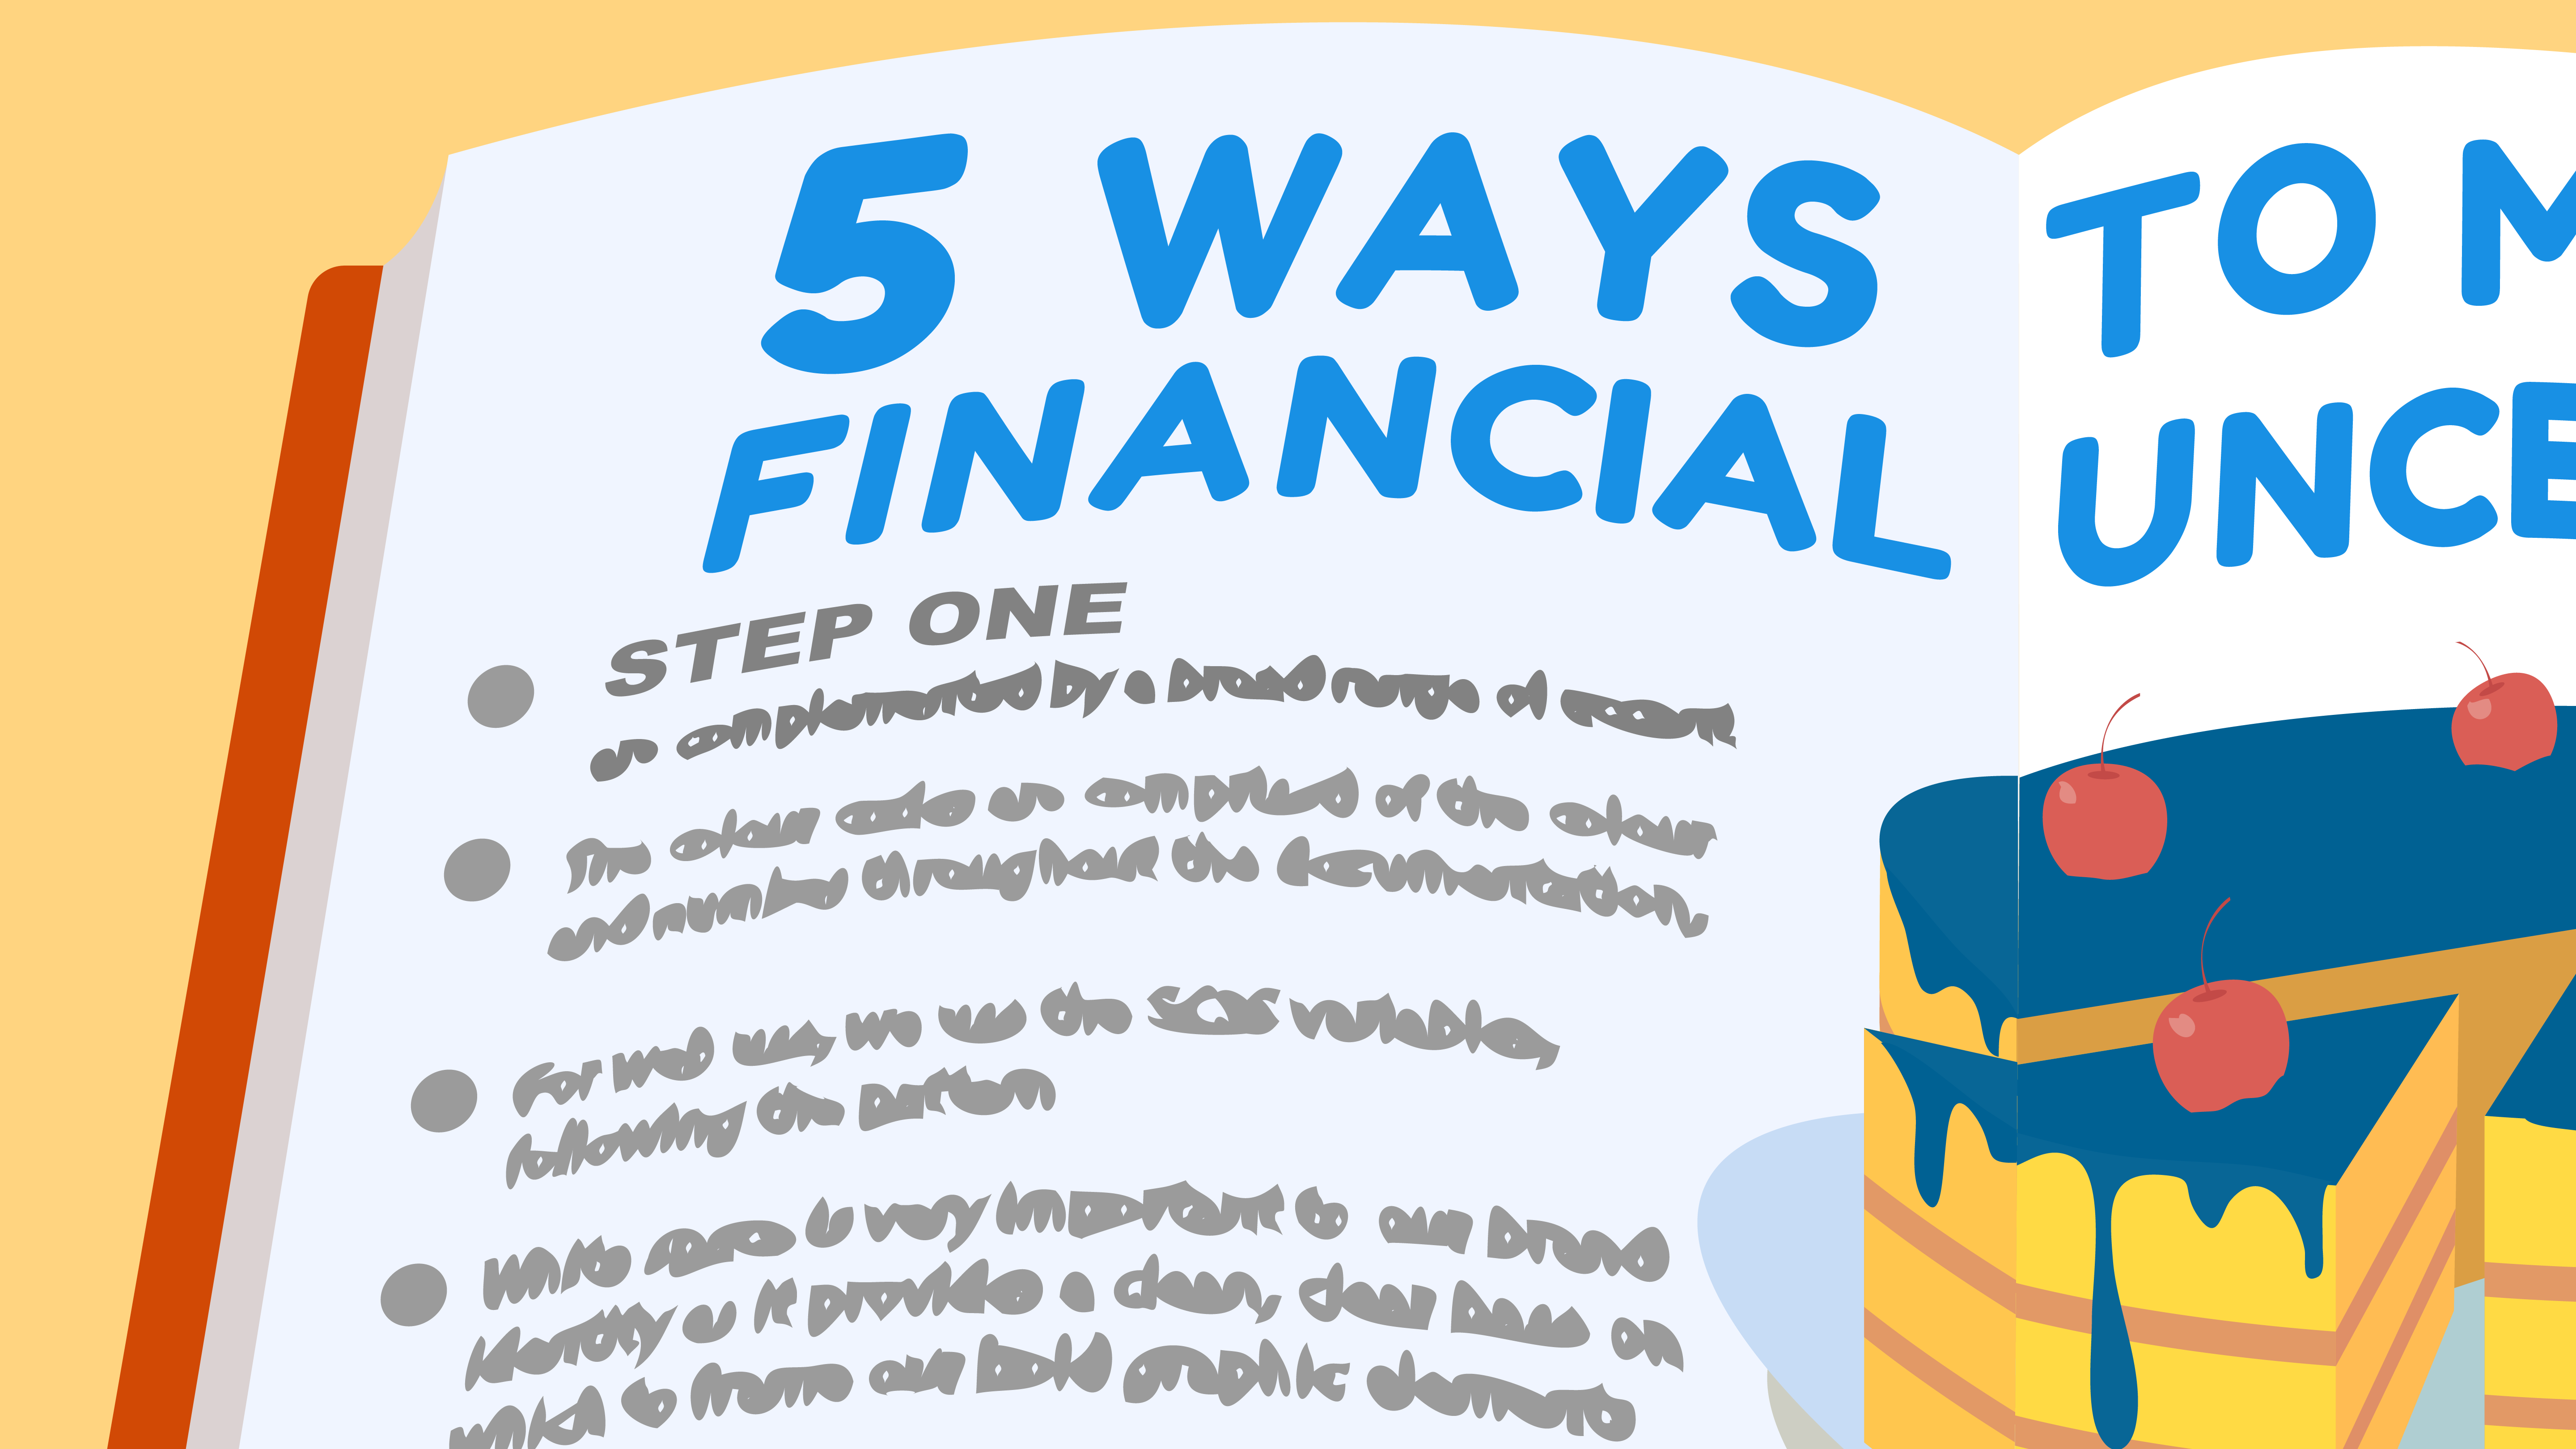 How to deal with financial uncertainty? - Animated video